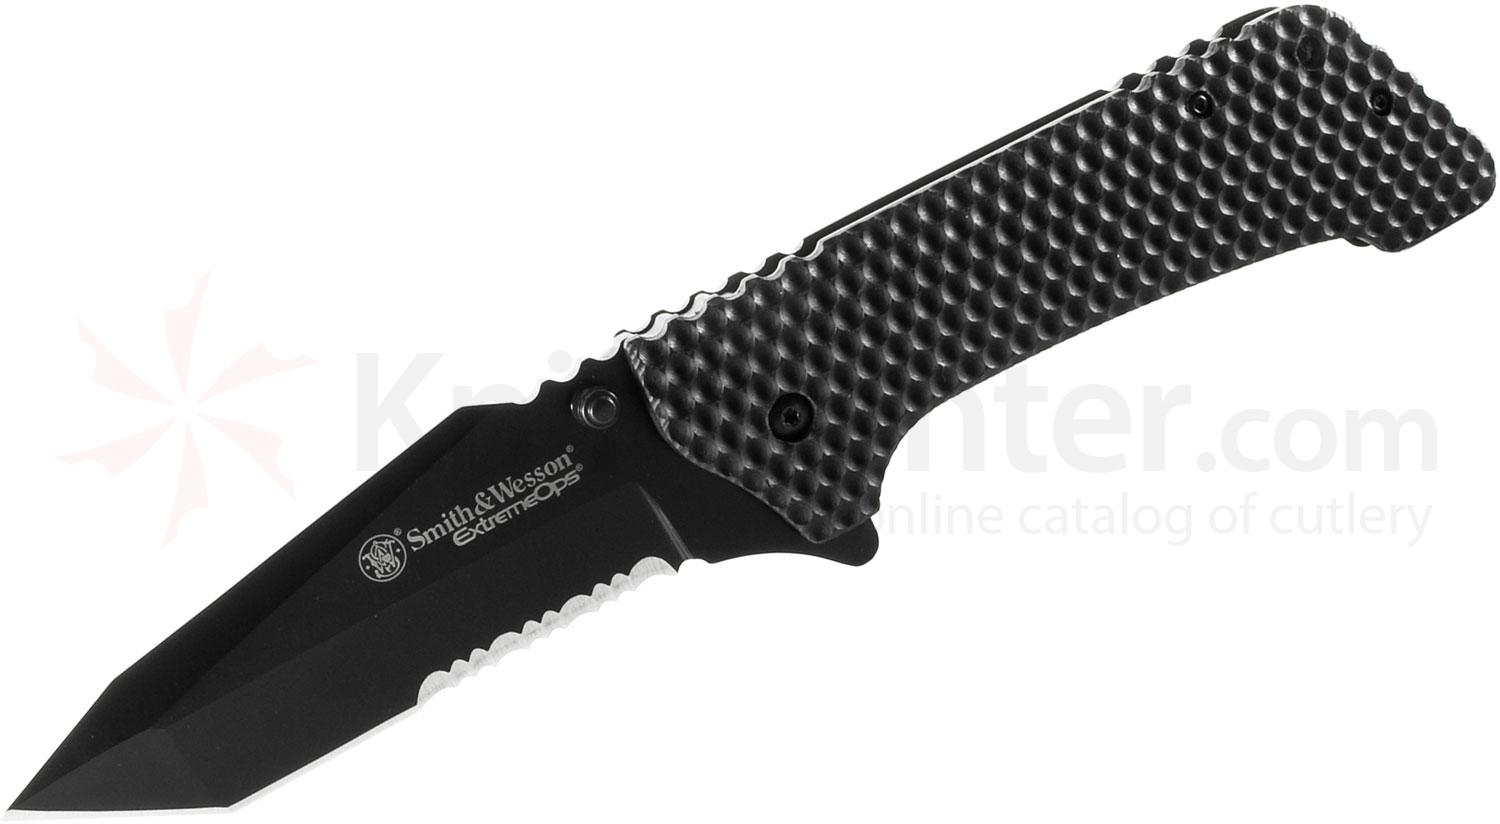 Smith & Wesson Extreme Ops Large Tactical Folding 3.9 inch Black Combo Tanto Blade, Black G10 Handle